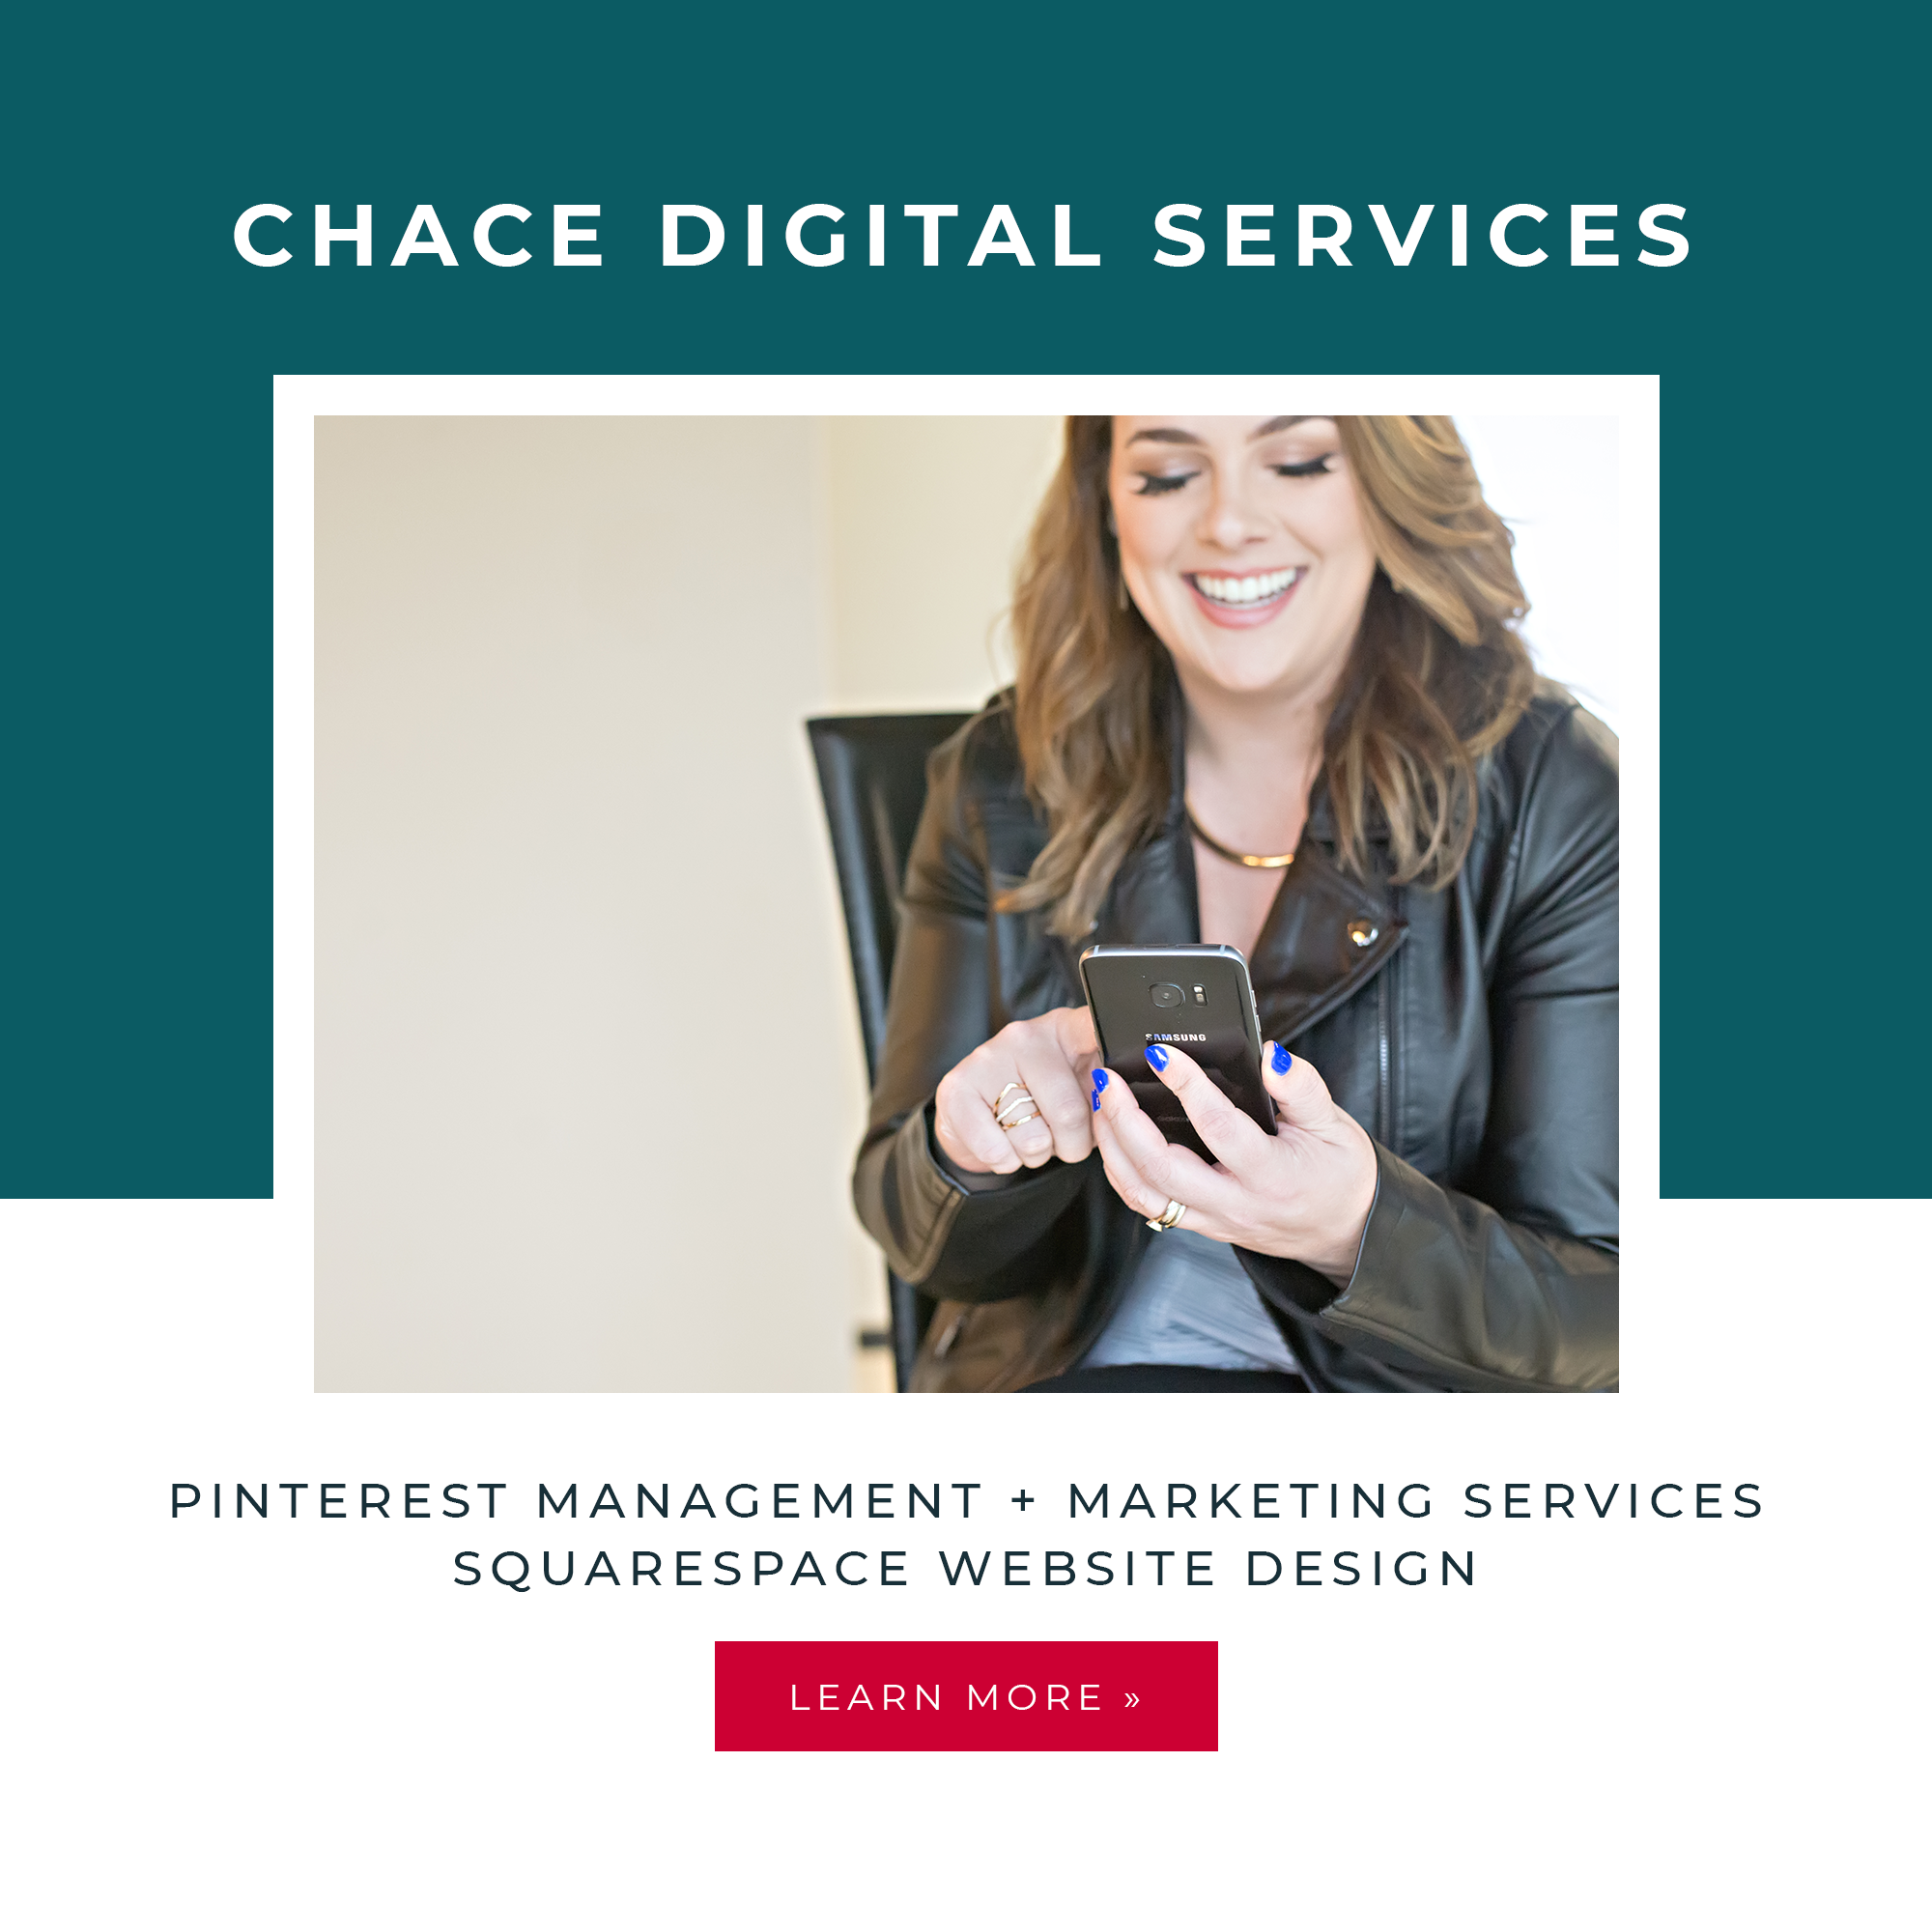 Chace Digital services social sharing image.png